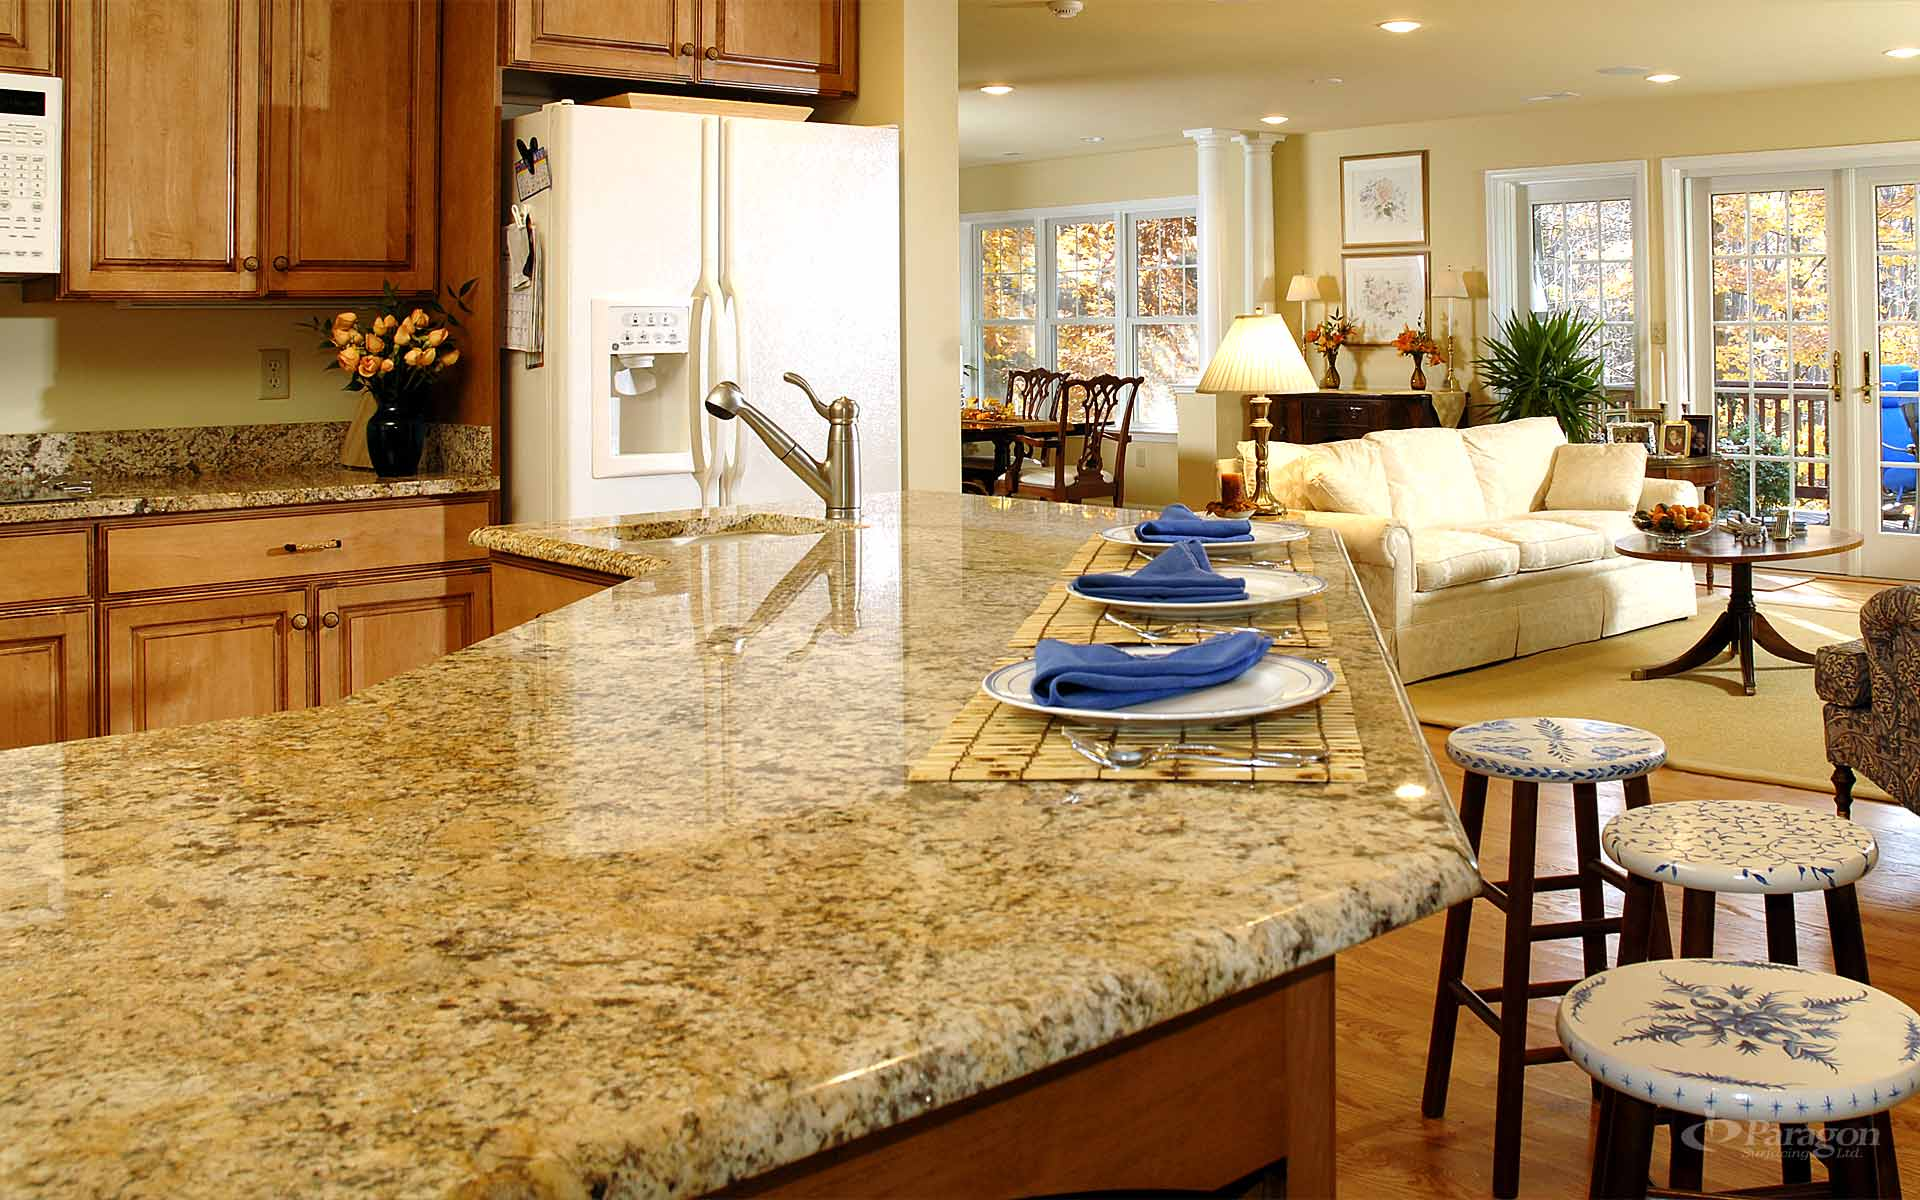 Popular Granite Countertop Configurations Orlando: Granite Countertops Vancouver Natural Stone Richmond BC